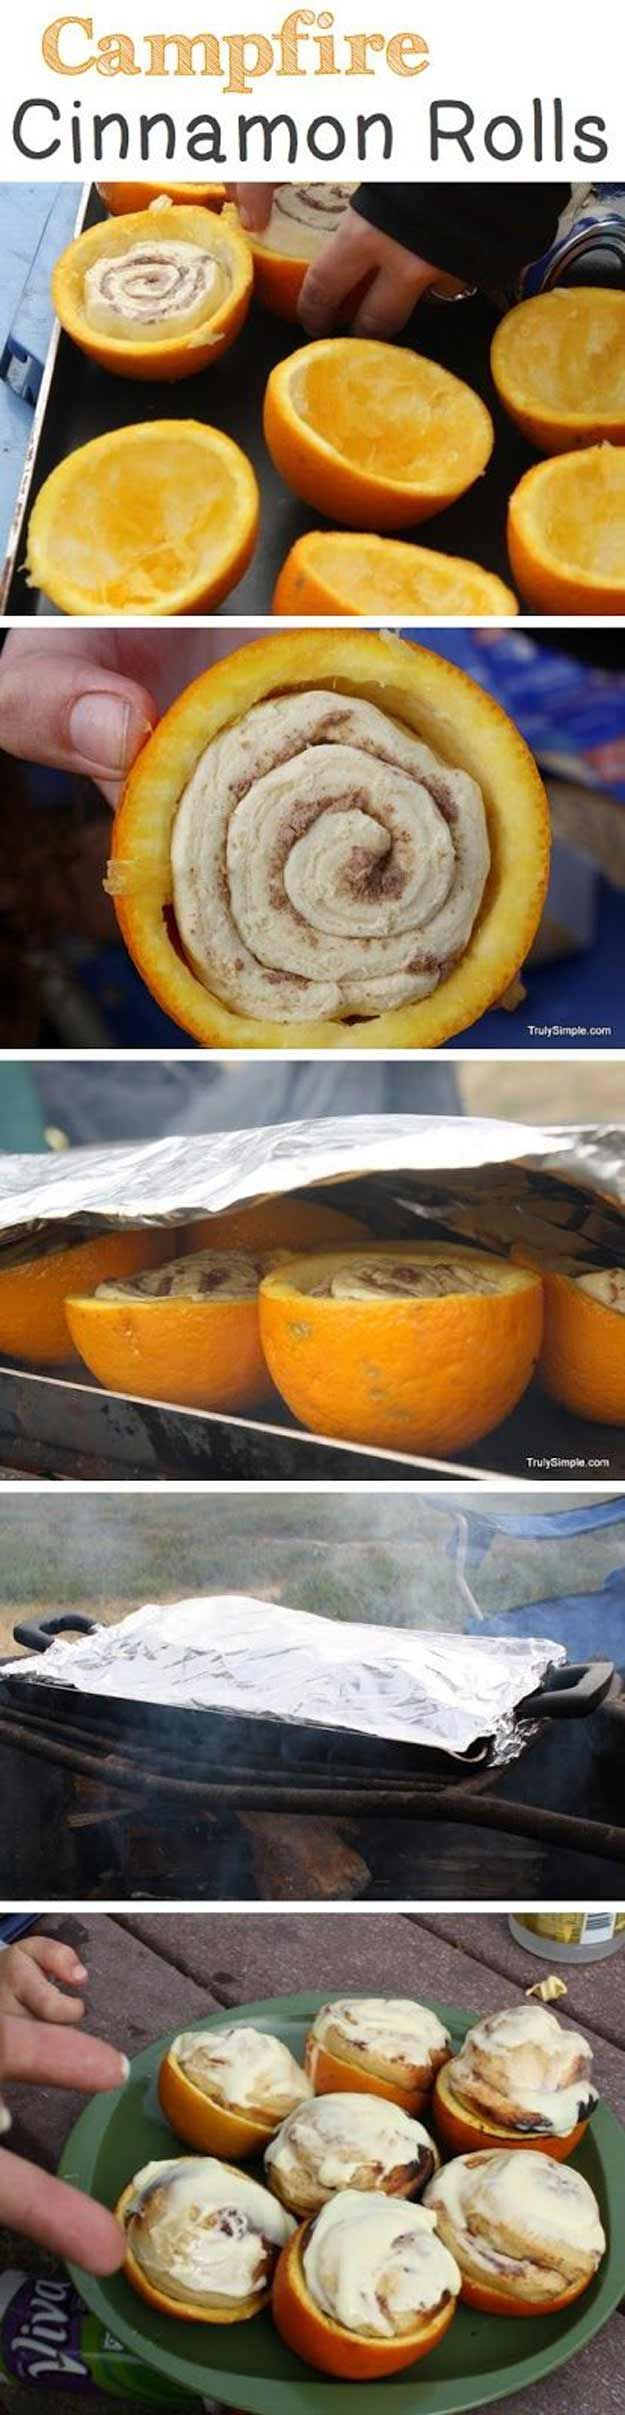 Campfire Cinnamon Rolls | 18 Mouthwatering Breakfast Recipes